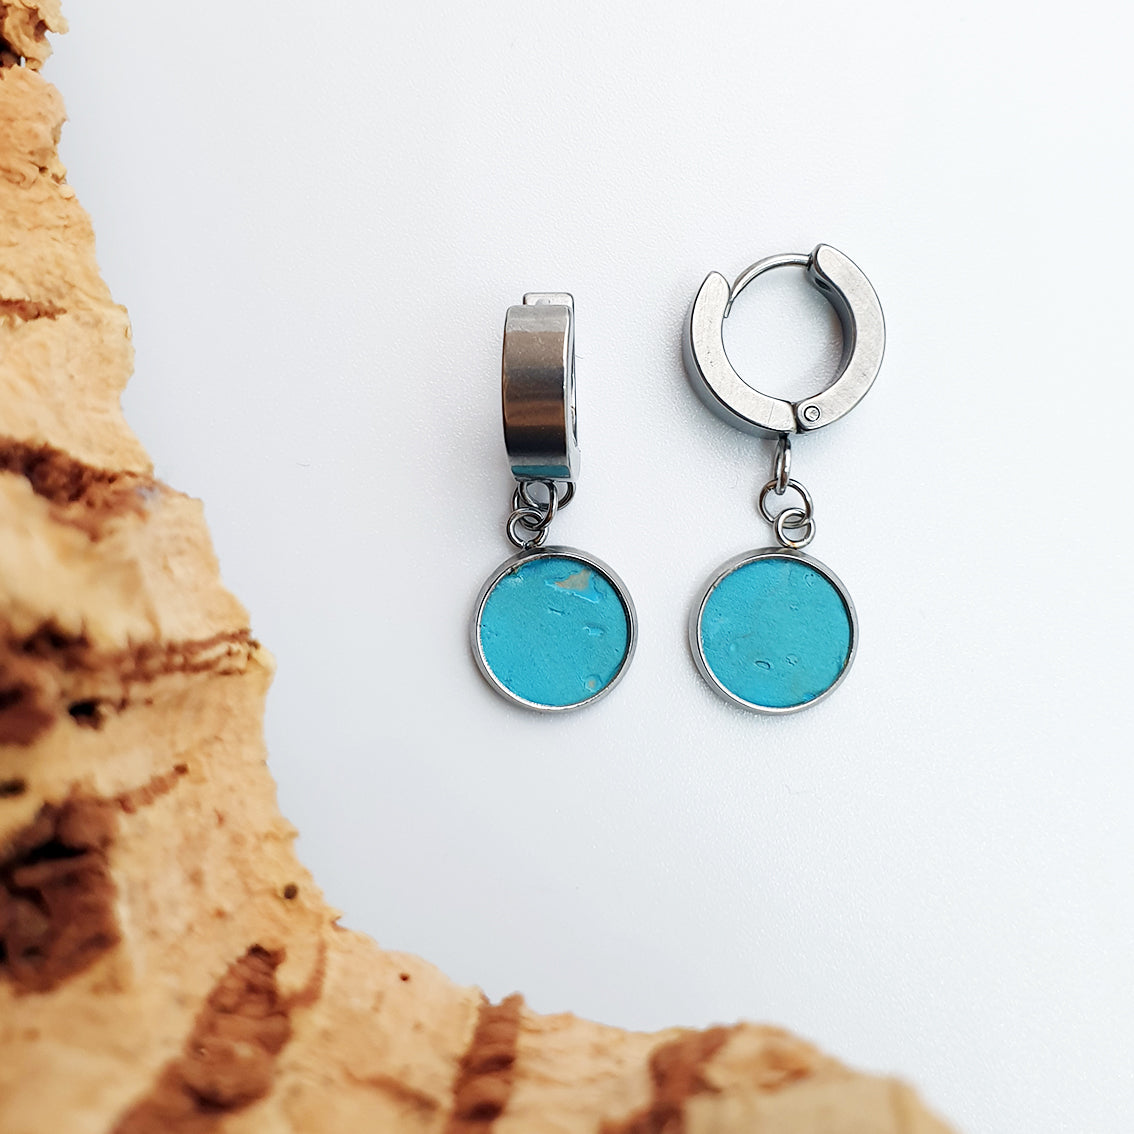 Fabrikk 1 Dwarf Planet Earrings | Bahama Blue | Vegan Leather